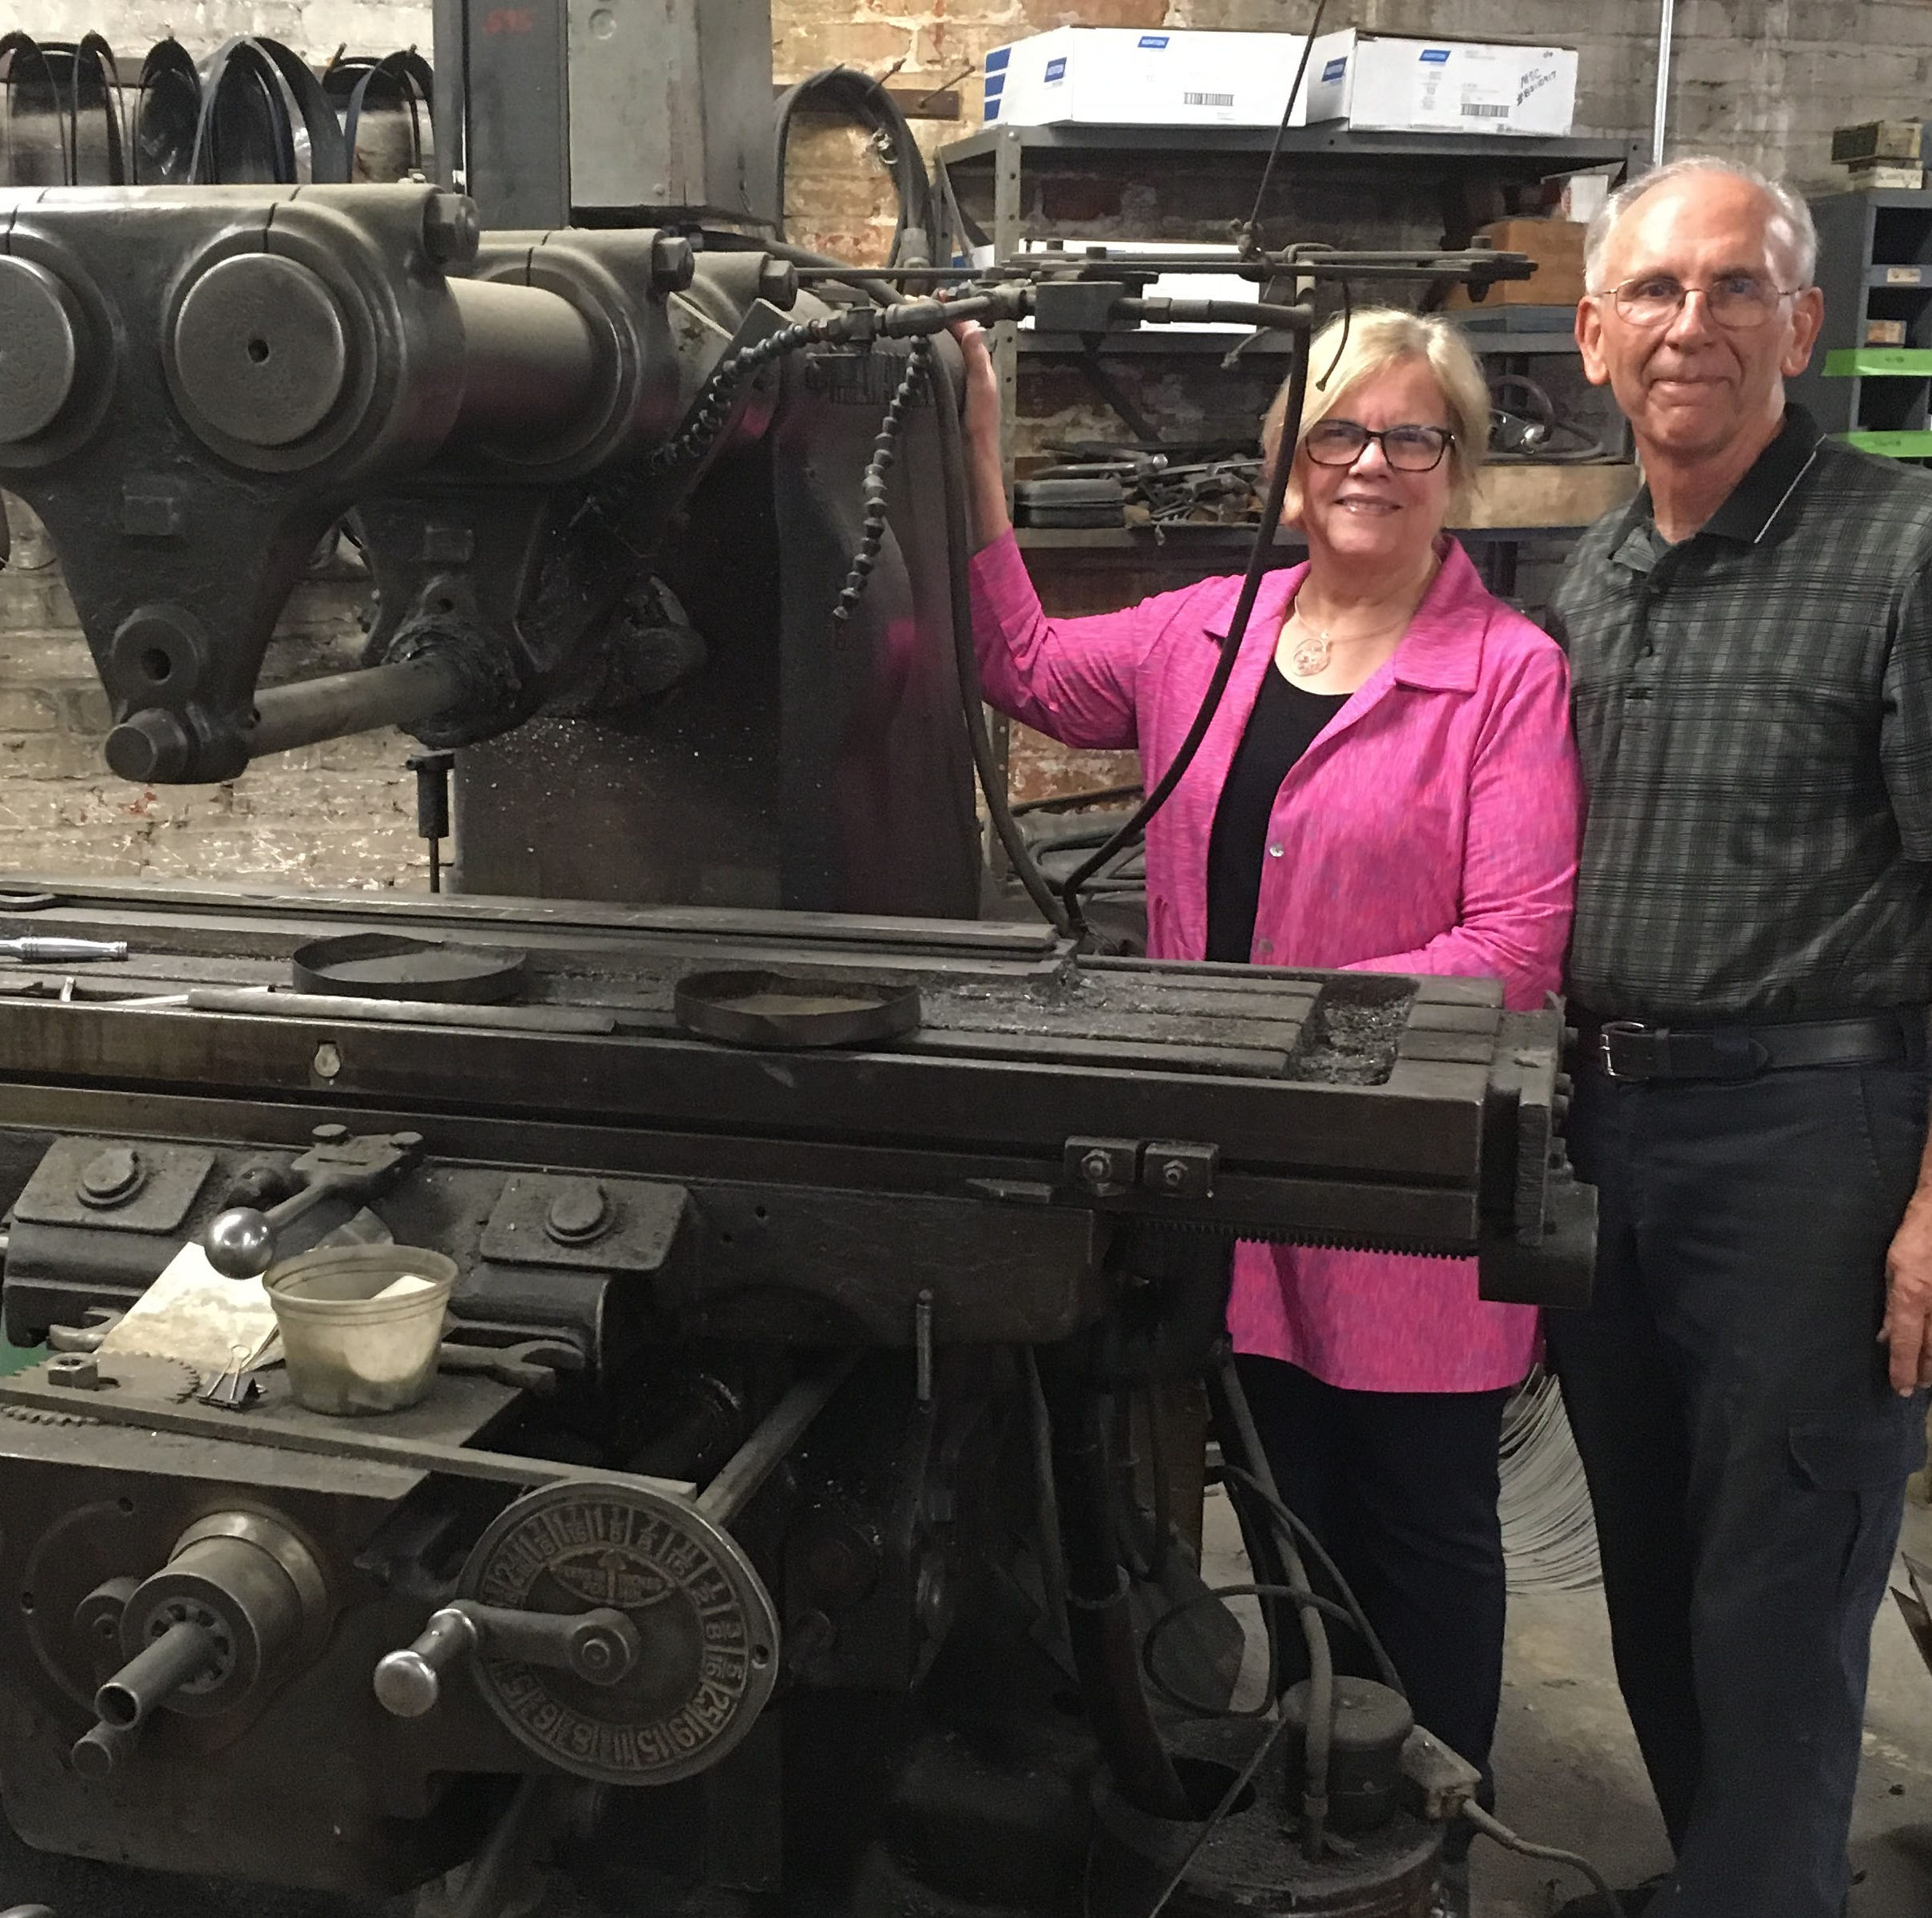 York machine shop, Engdahl Mfg., celebrating 100th year